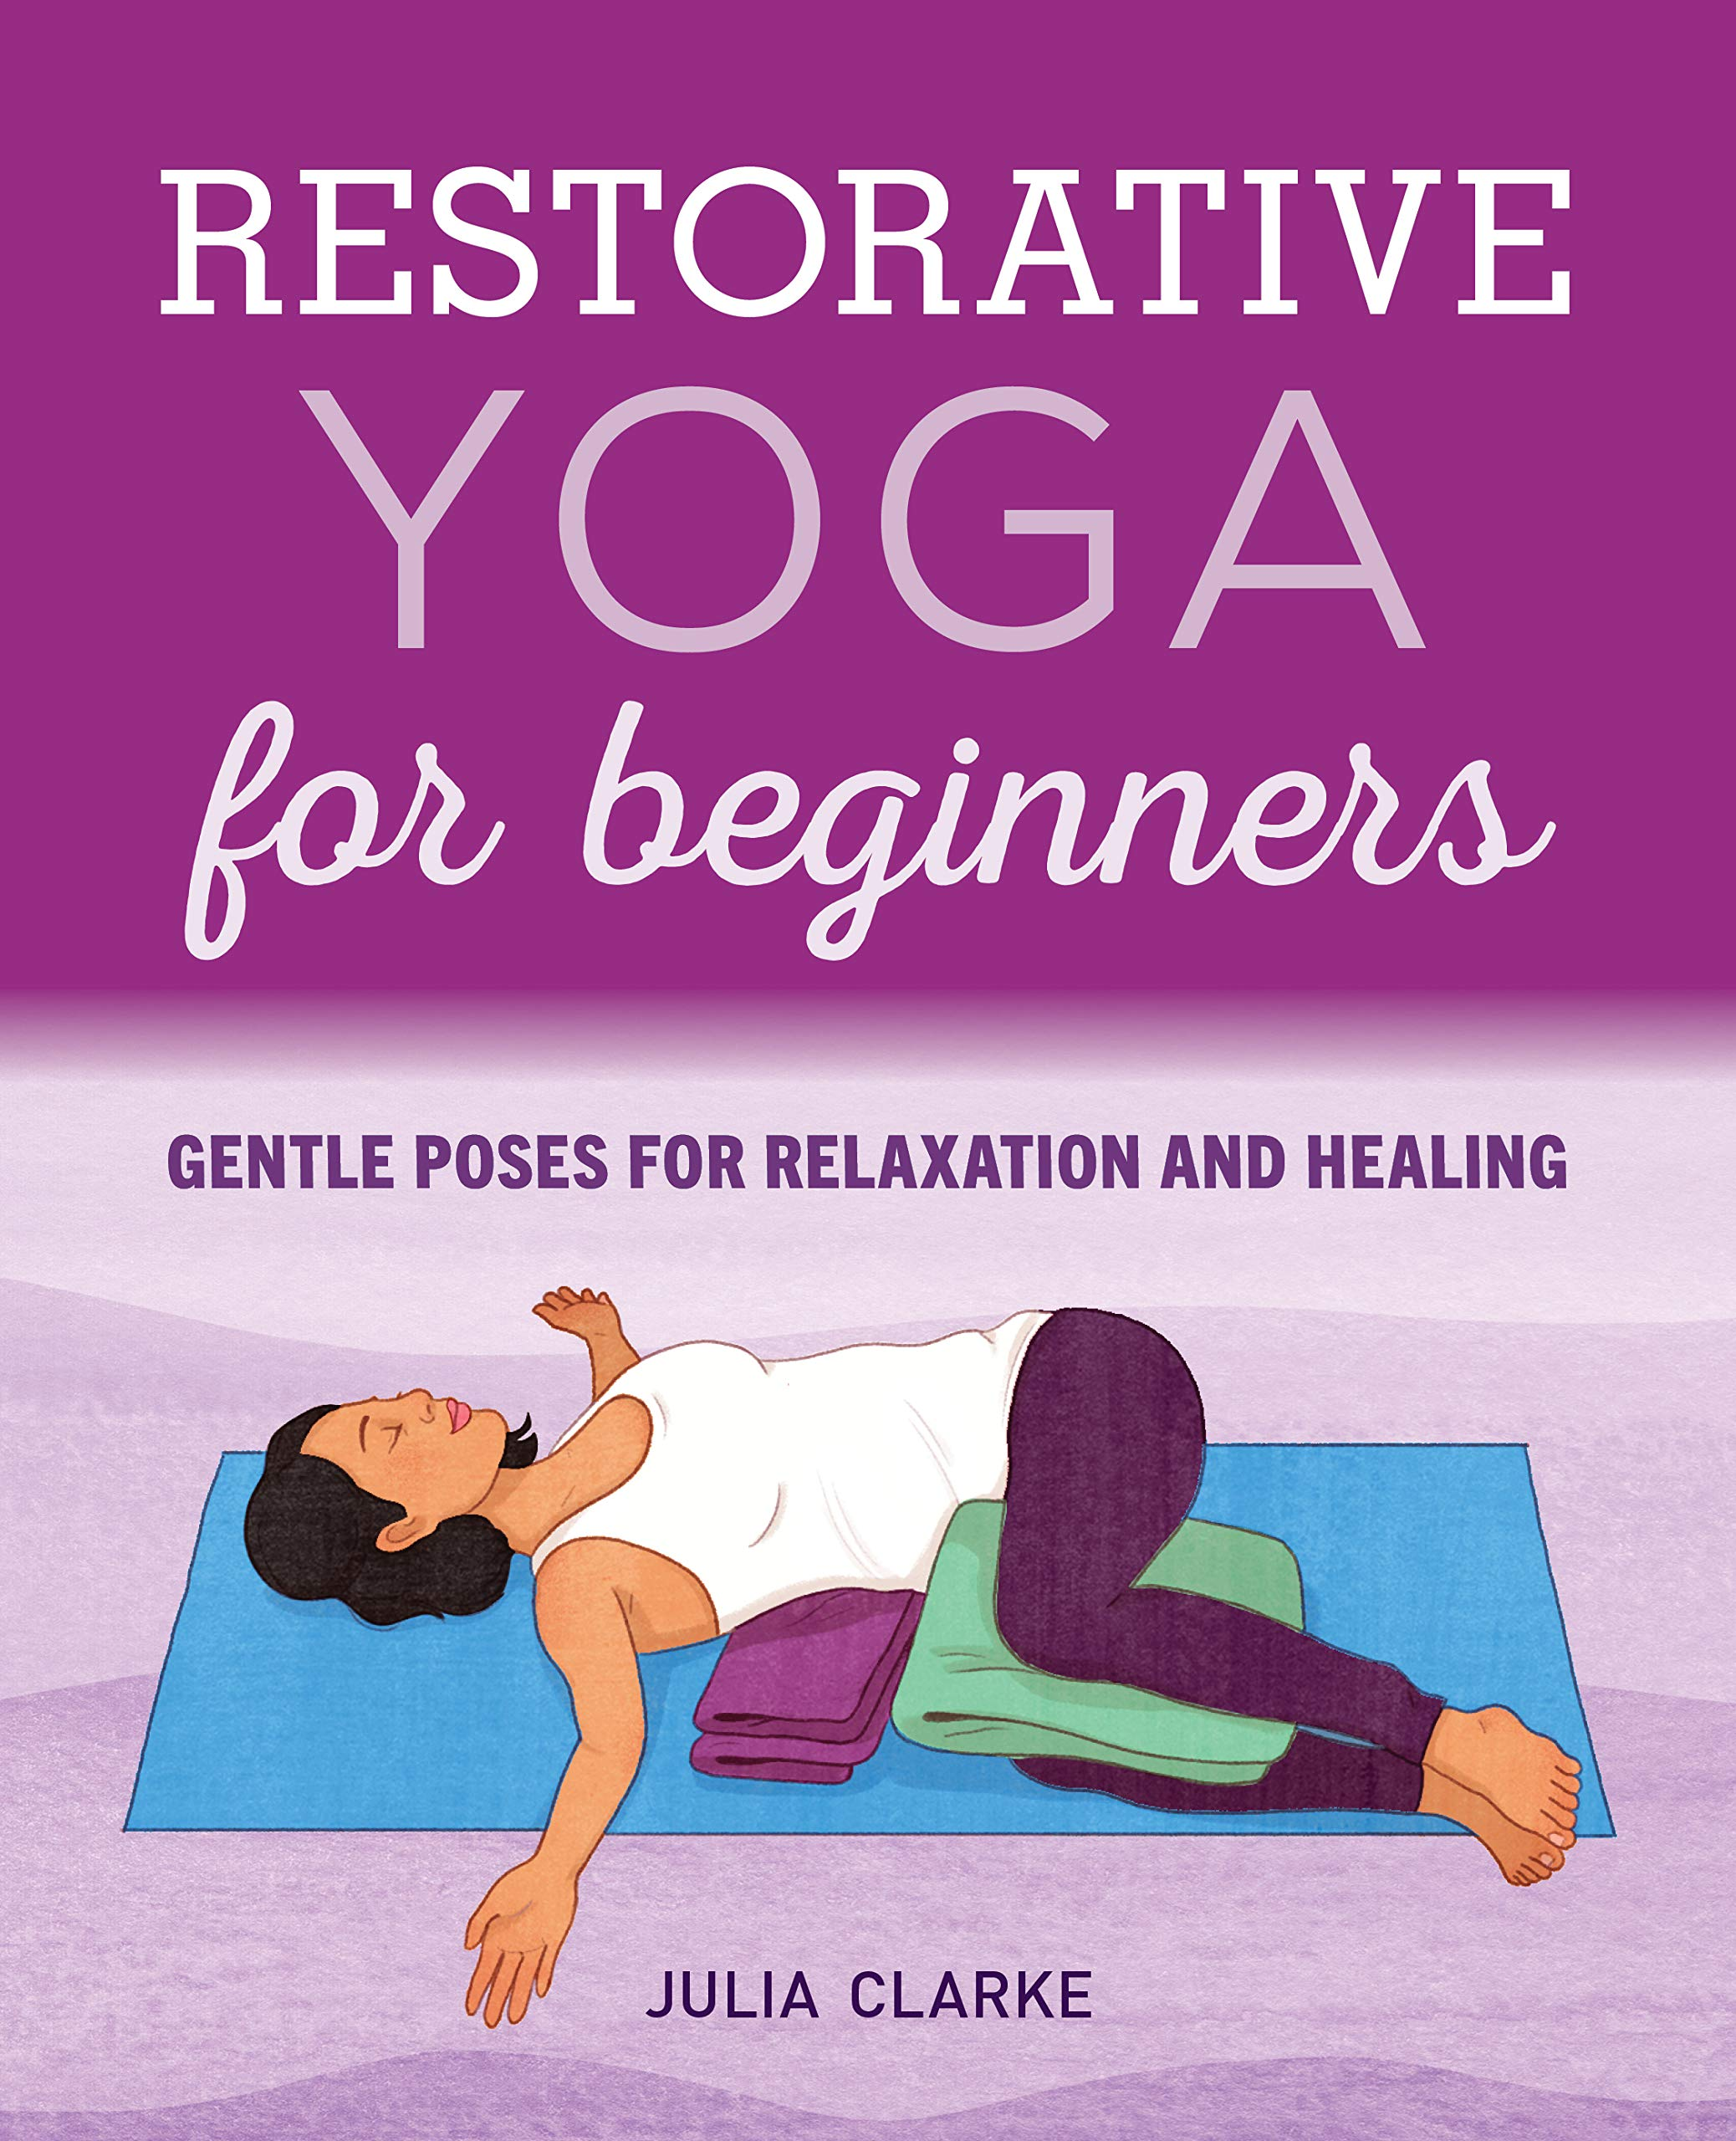 Restorative Yoga for Beginners: Gentle Poses for Relaxation and